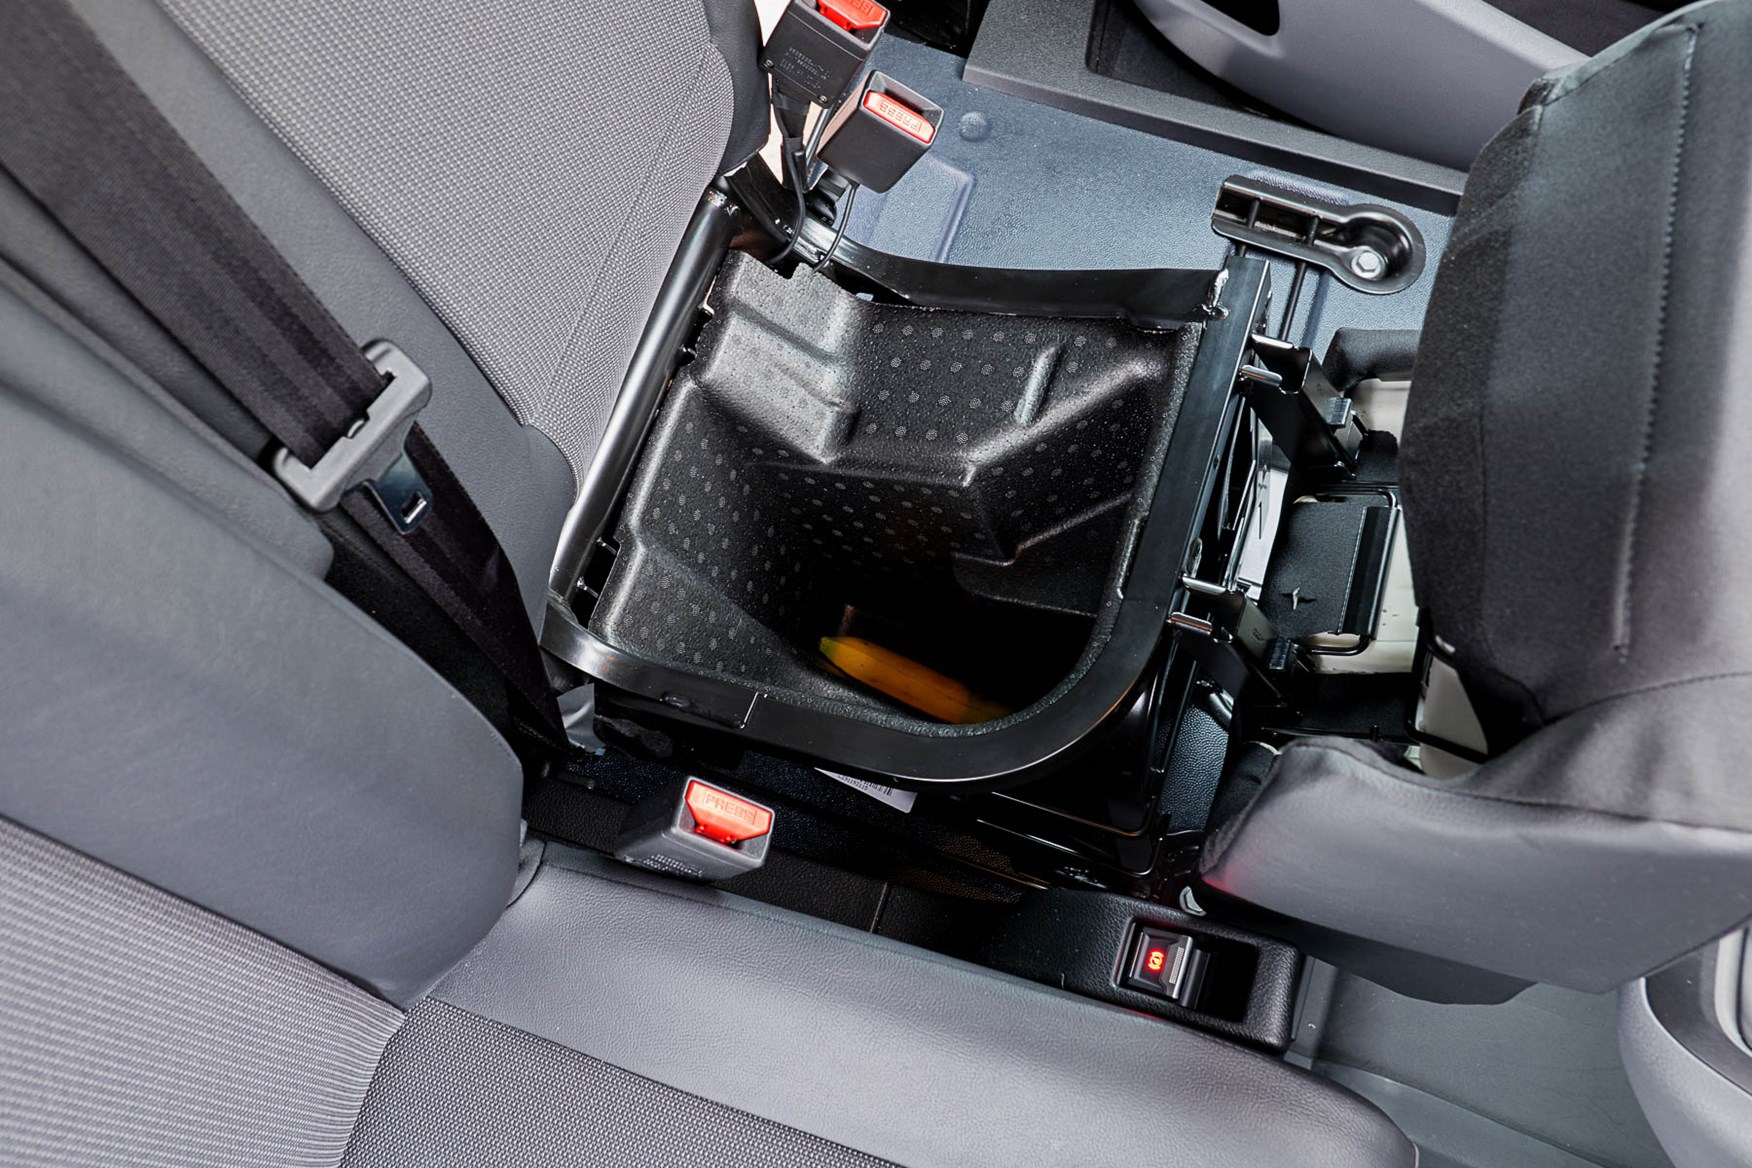 Citroen e-Dispatch under-seat storage, with Moduwork